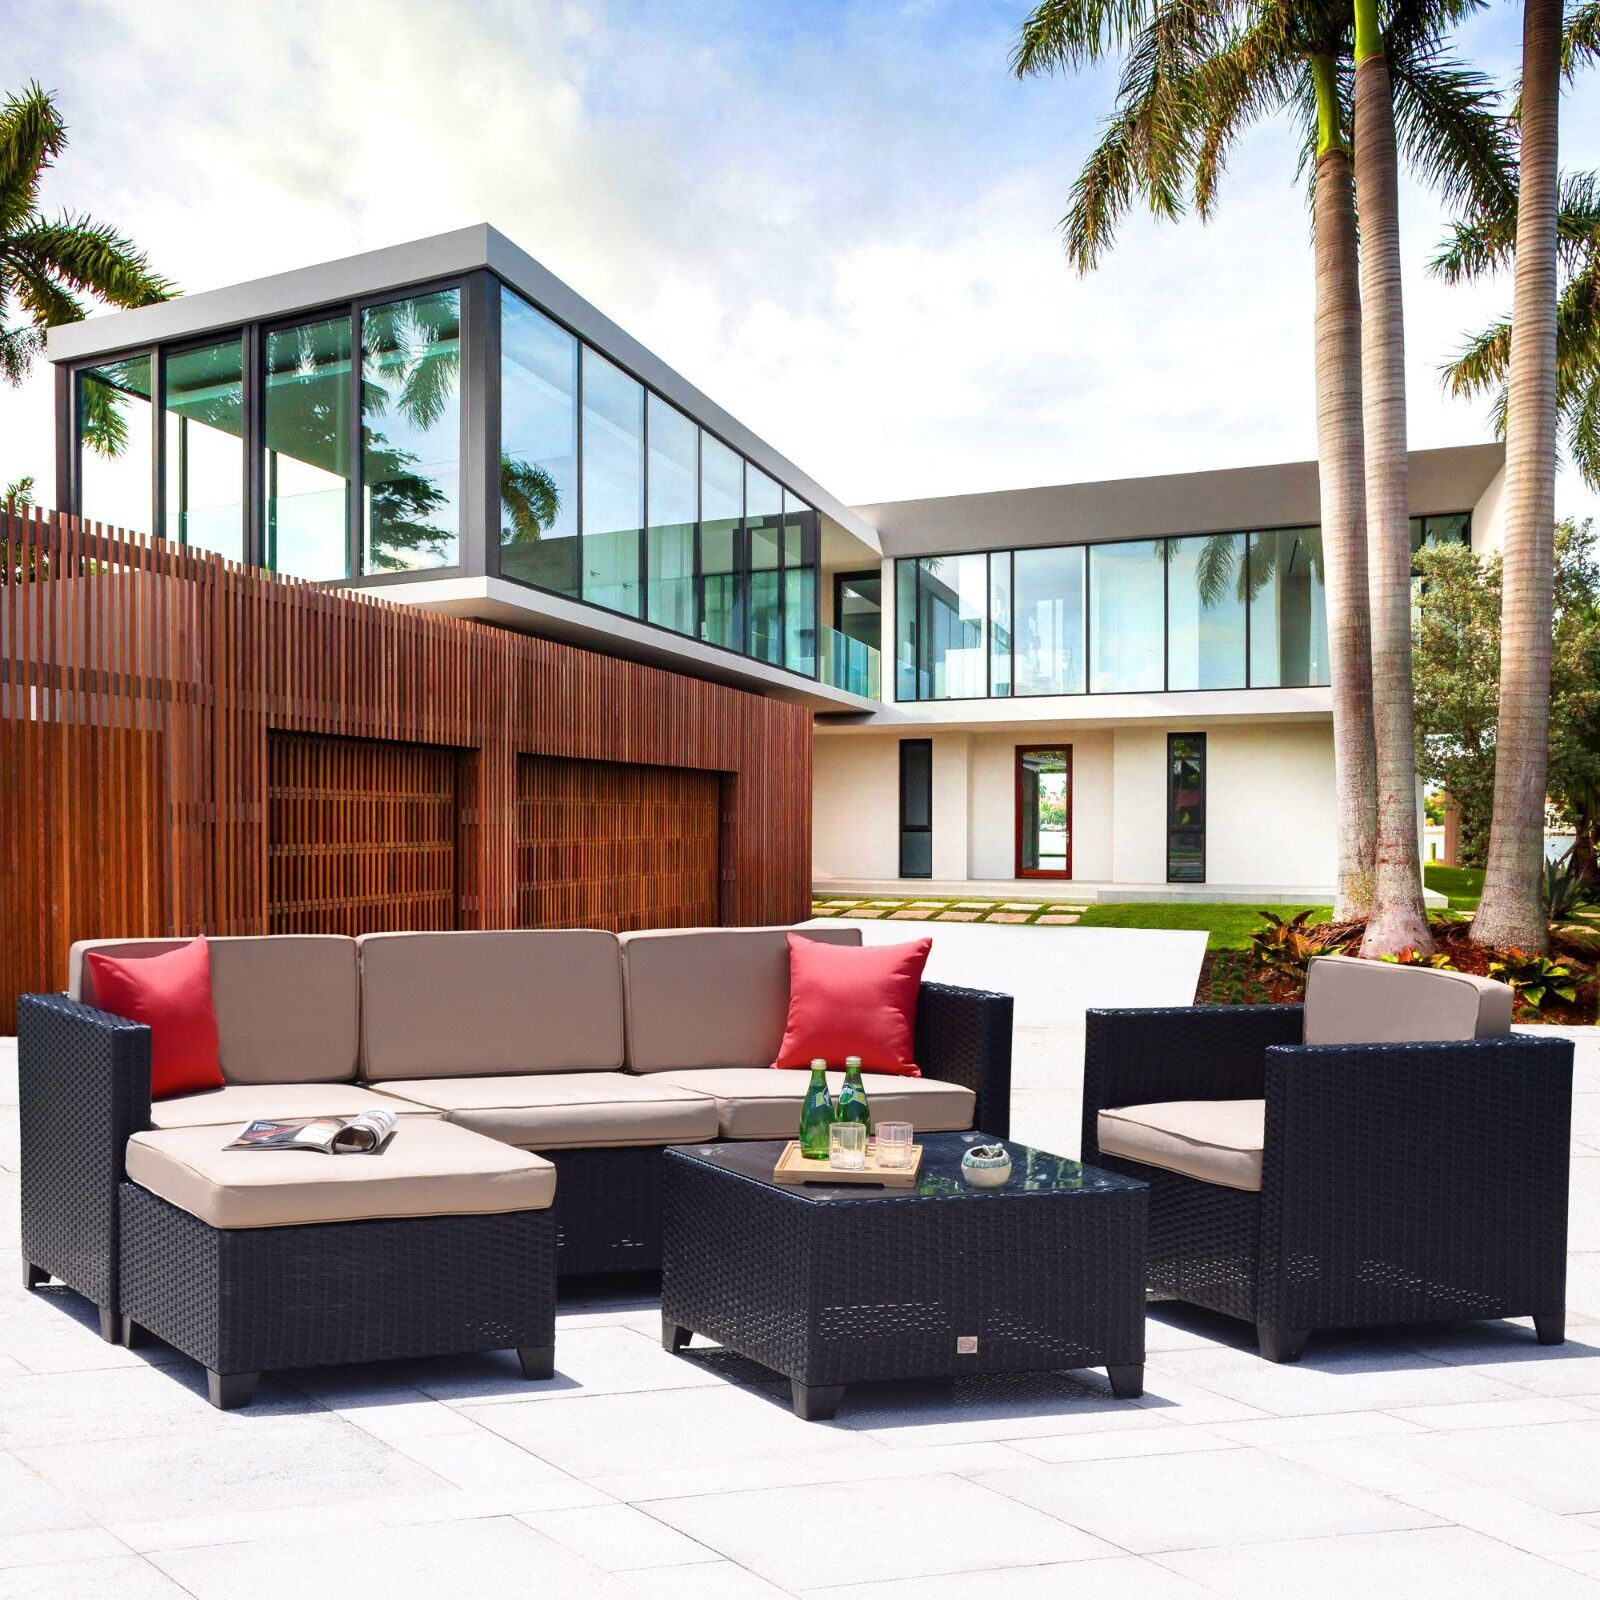 Garden Furniture - 6PC Outdoor Patio Furniture Rattan Wicker Sofa Couch Garden Sectional Set Black